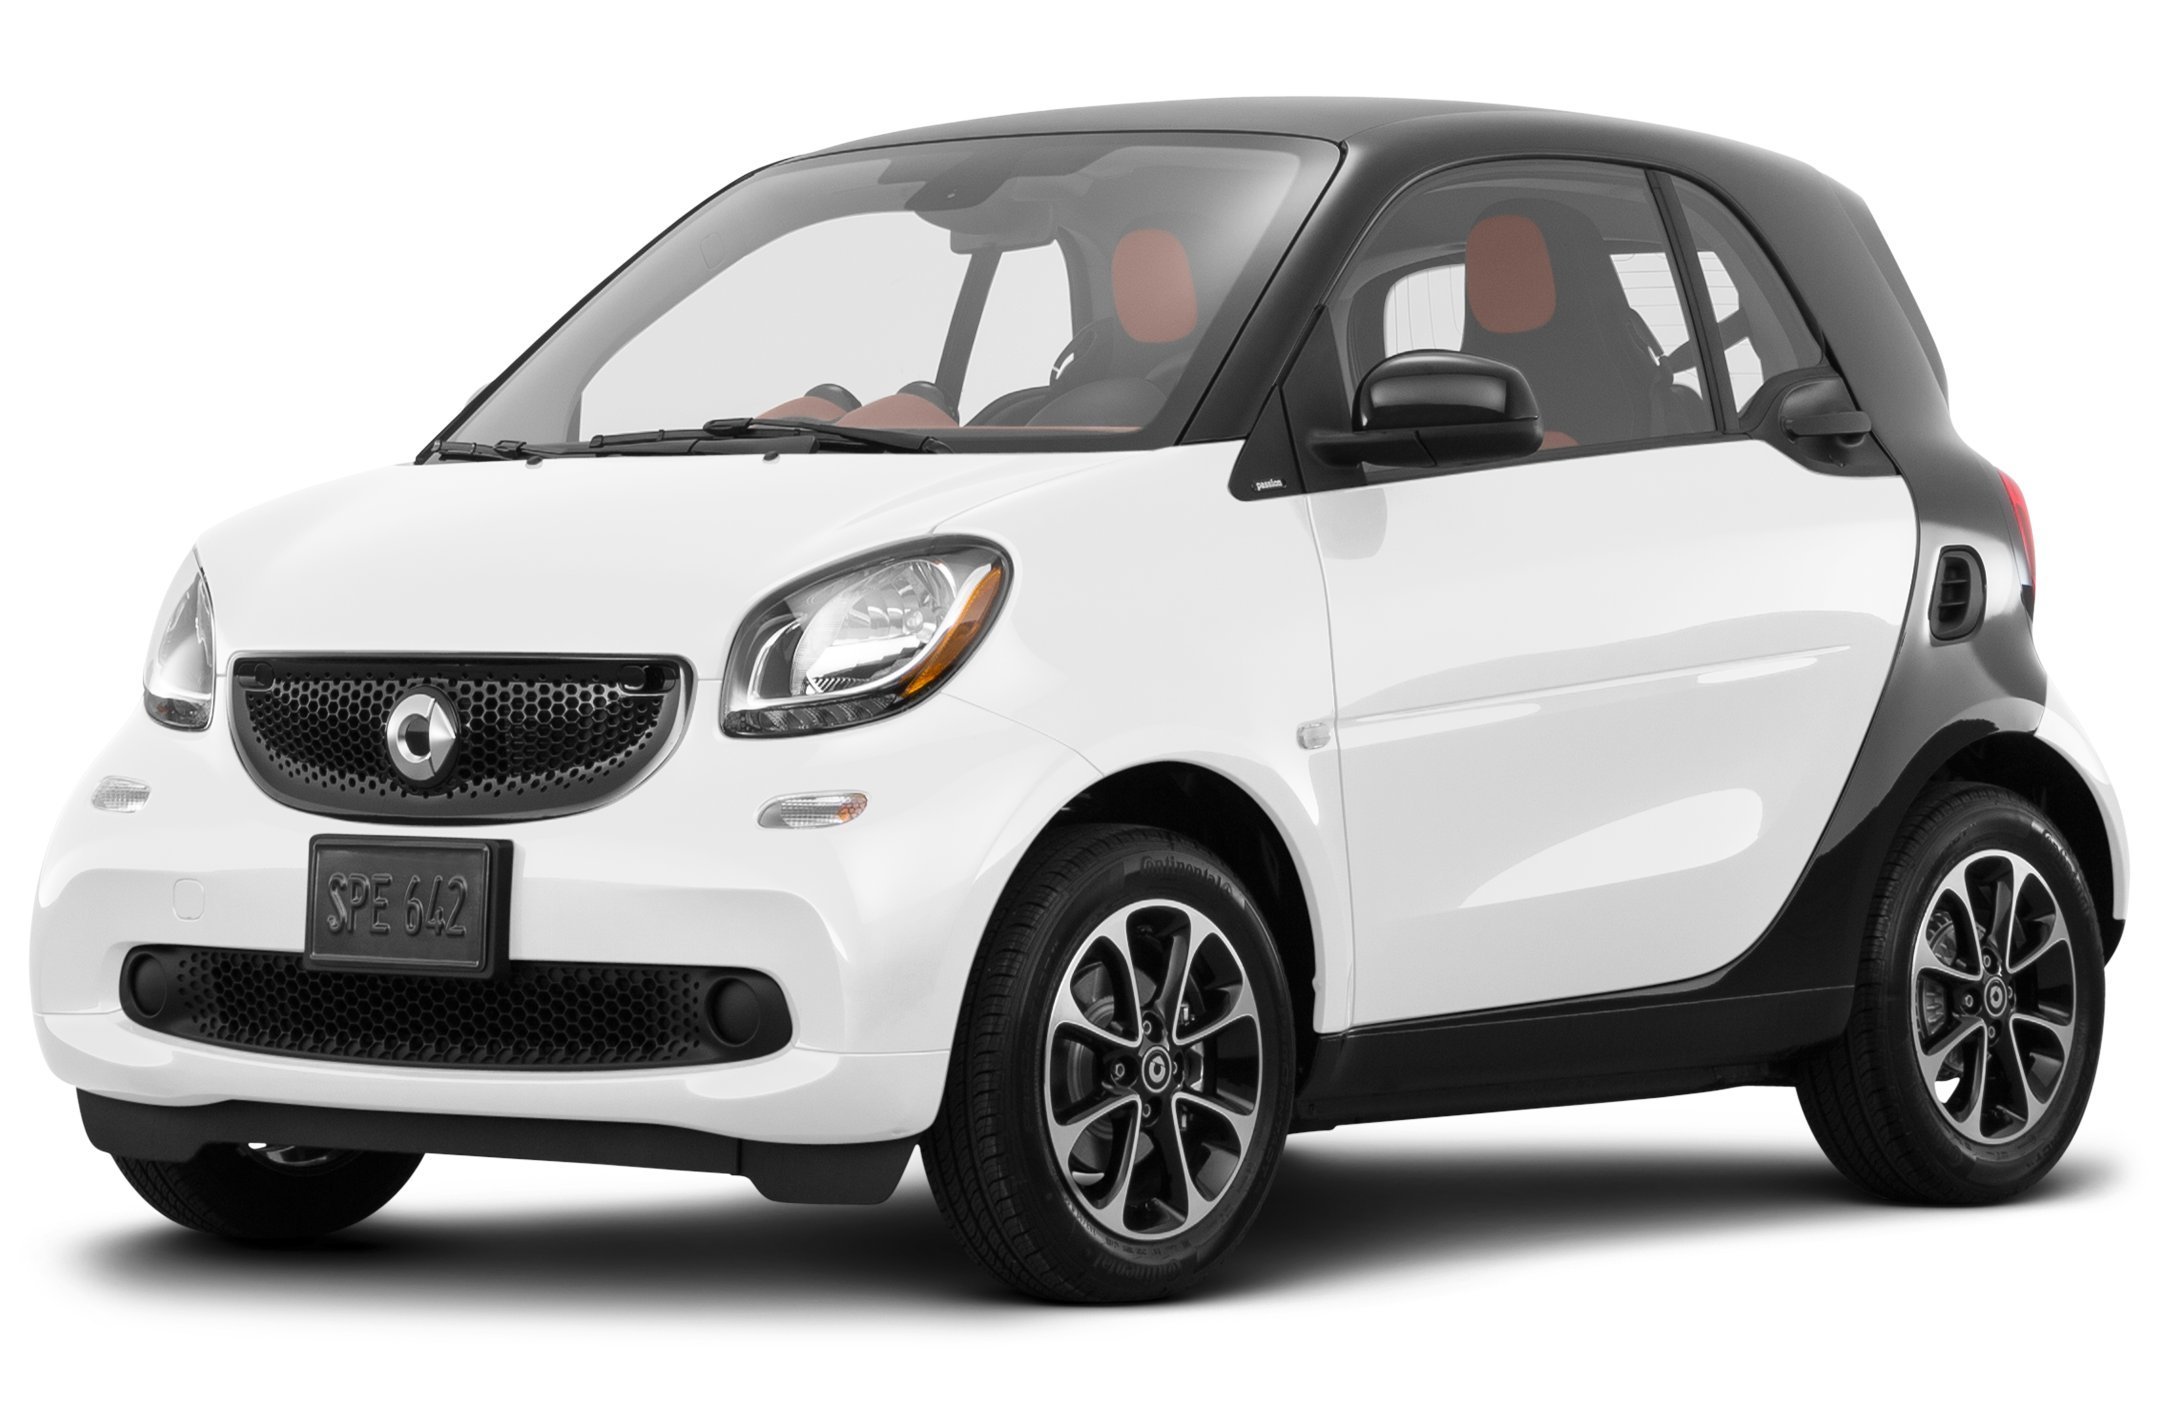 Amazon.com: 2016 Smart Fortwo Reviews, Images, and Specs ...